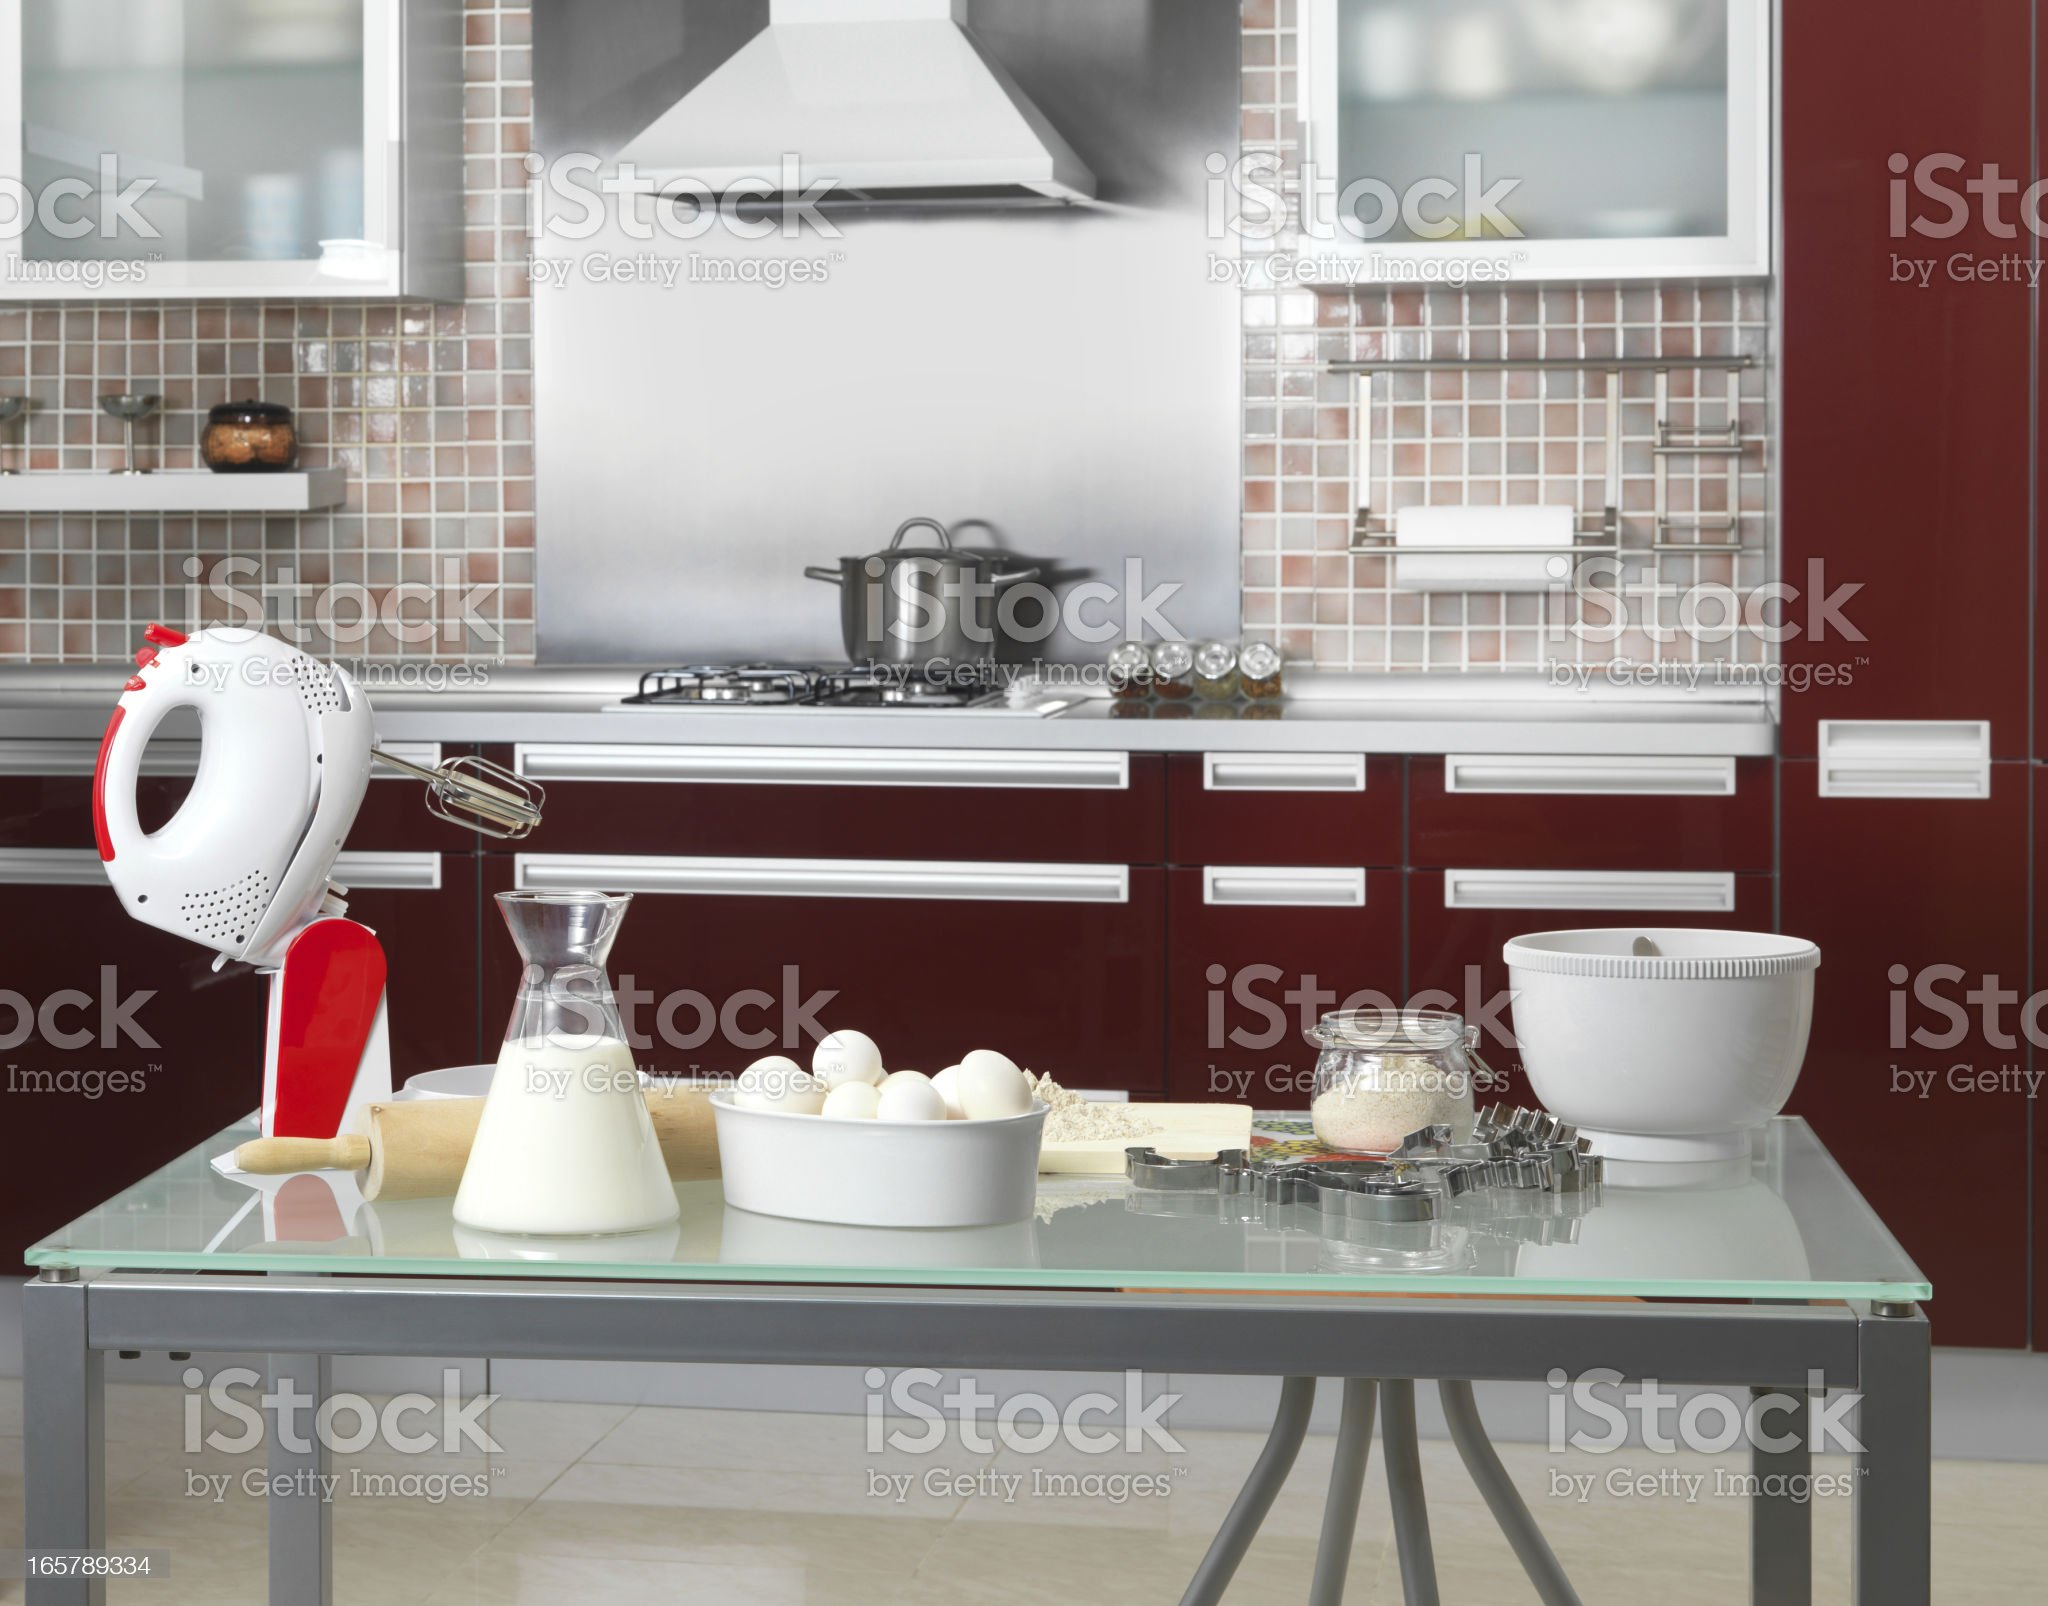 Utensils and cooking ingredients in kitchen royalty-free stock photo